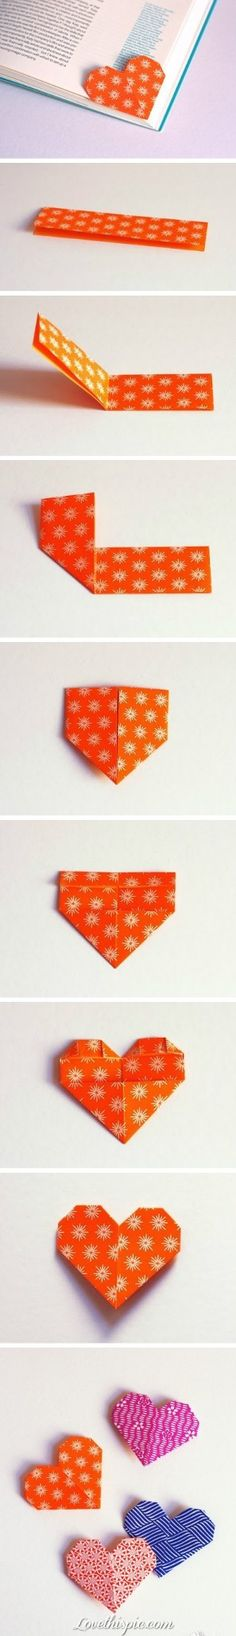 DIY bookmark hearts....such a cool, simple idea. Wish I'd thought of this!